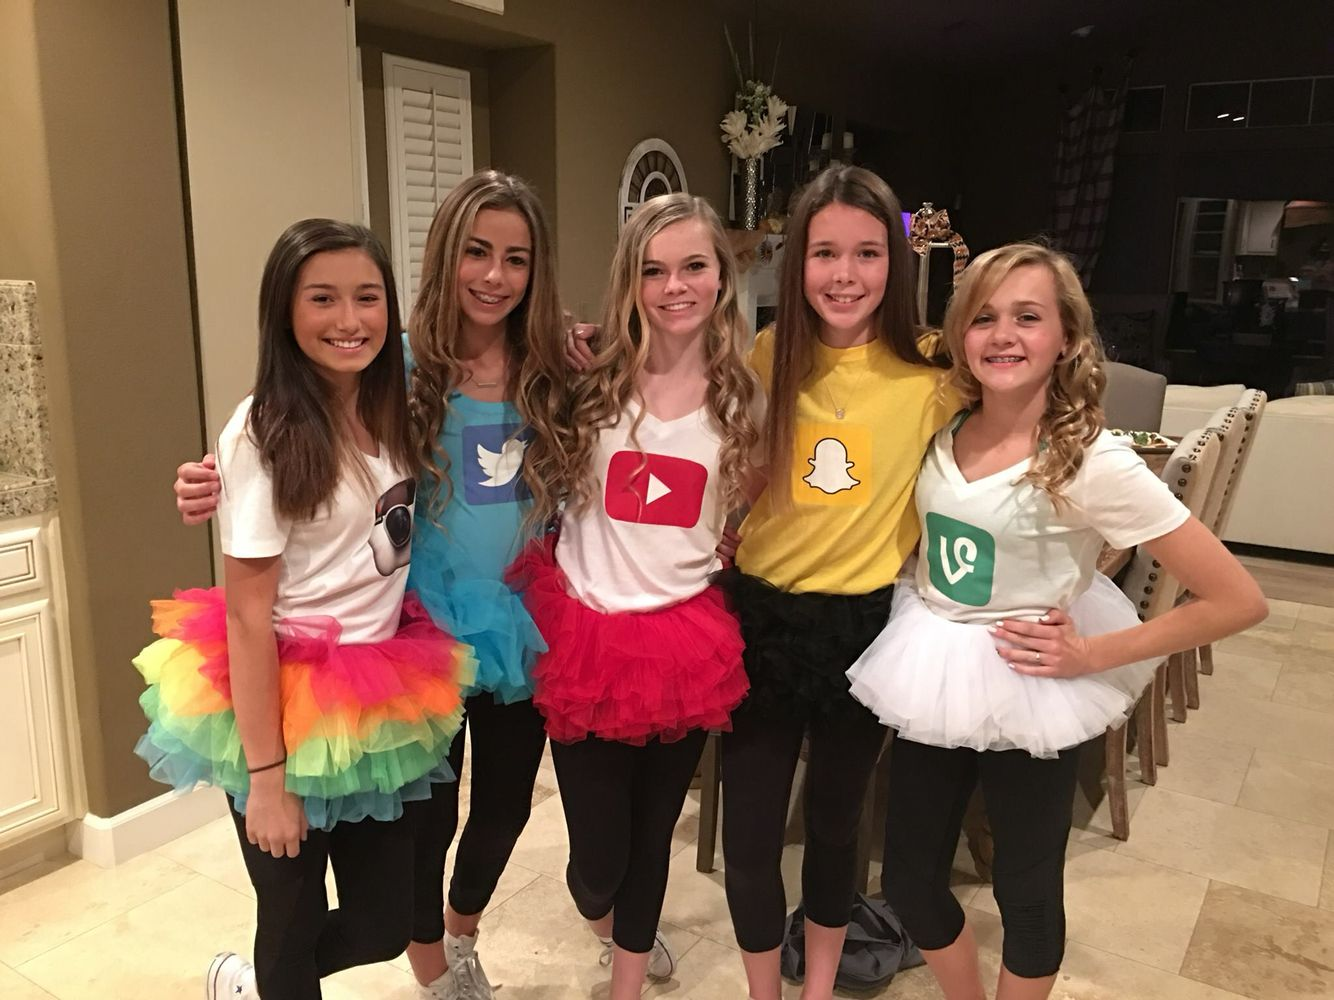 teen group costume, social media | halloween costumes in 2018